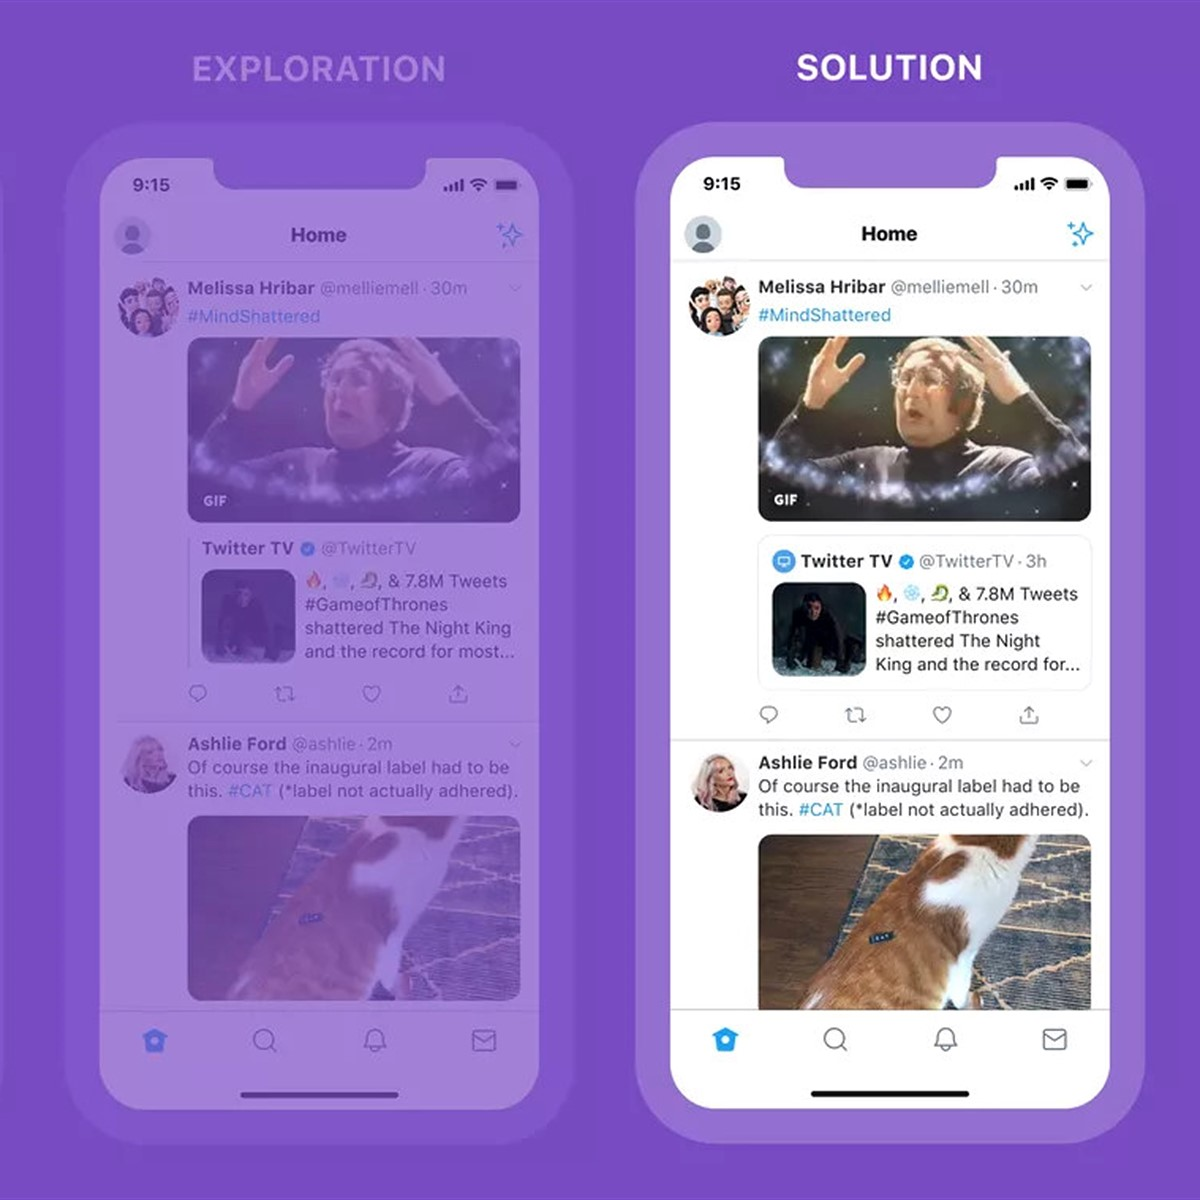 Twitter now supports adding images and other media to